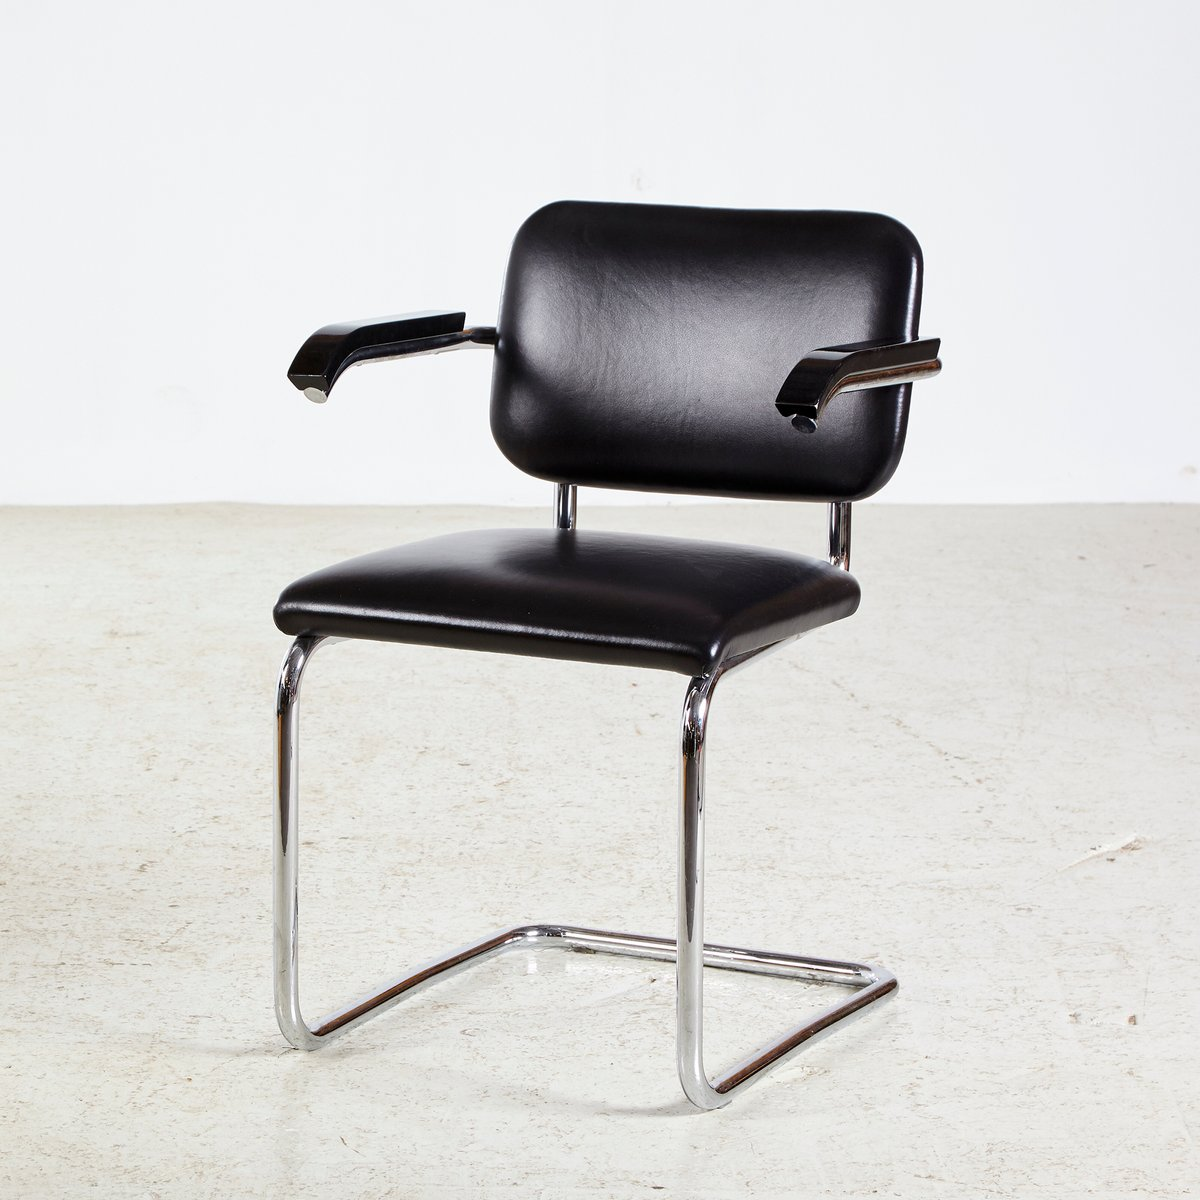 Cesca Chrome Framed Leather Chair By Marcel Breuer For Knoll Inc 1928